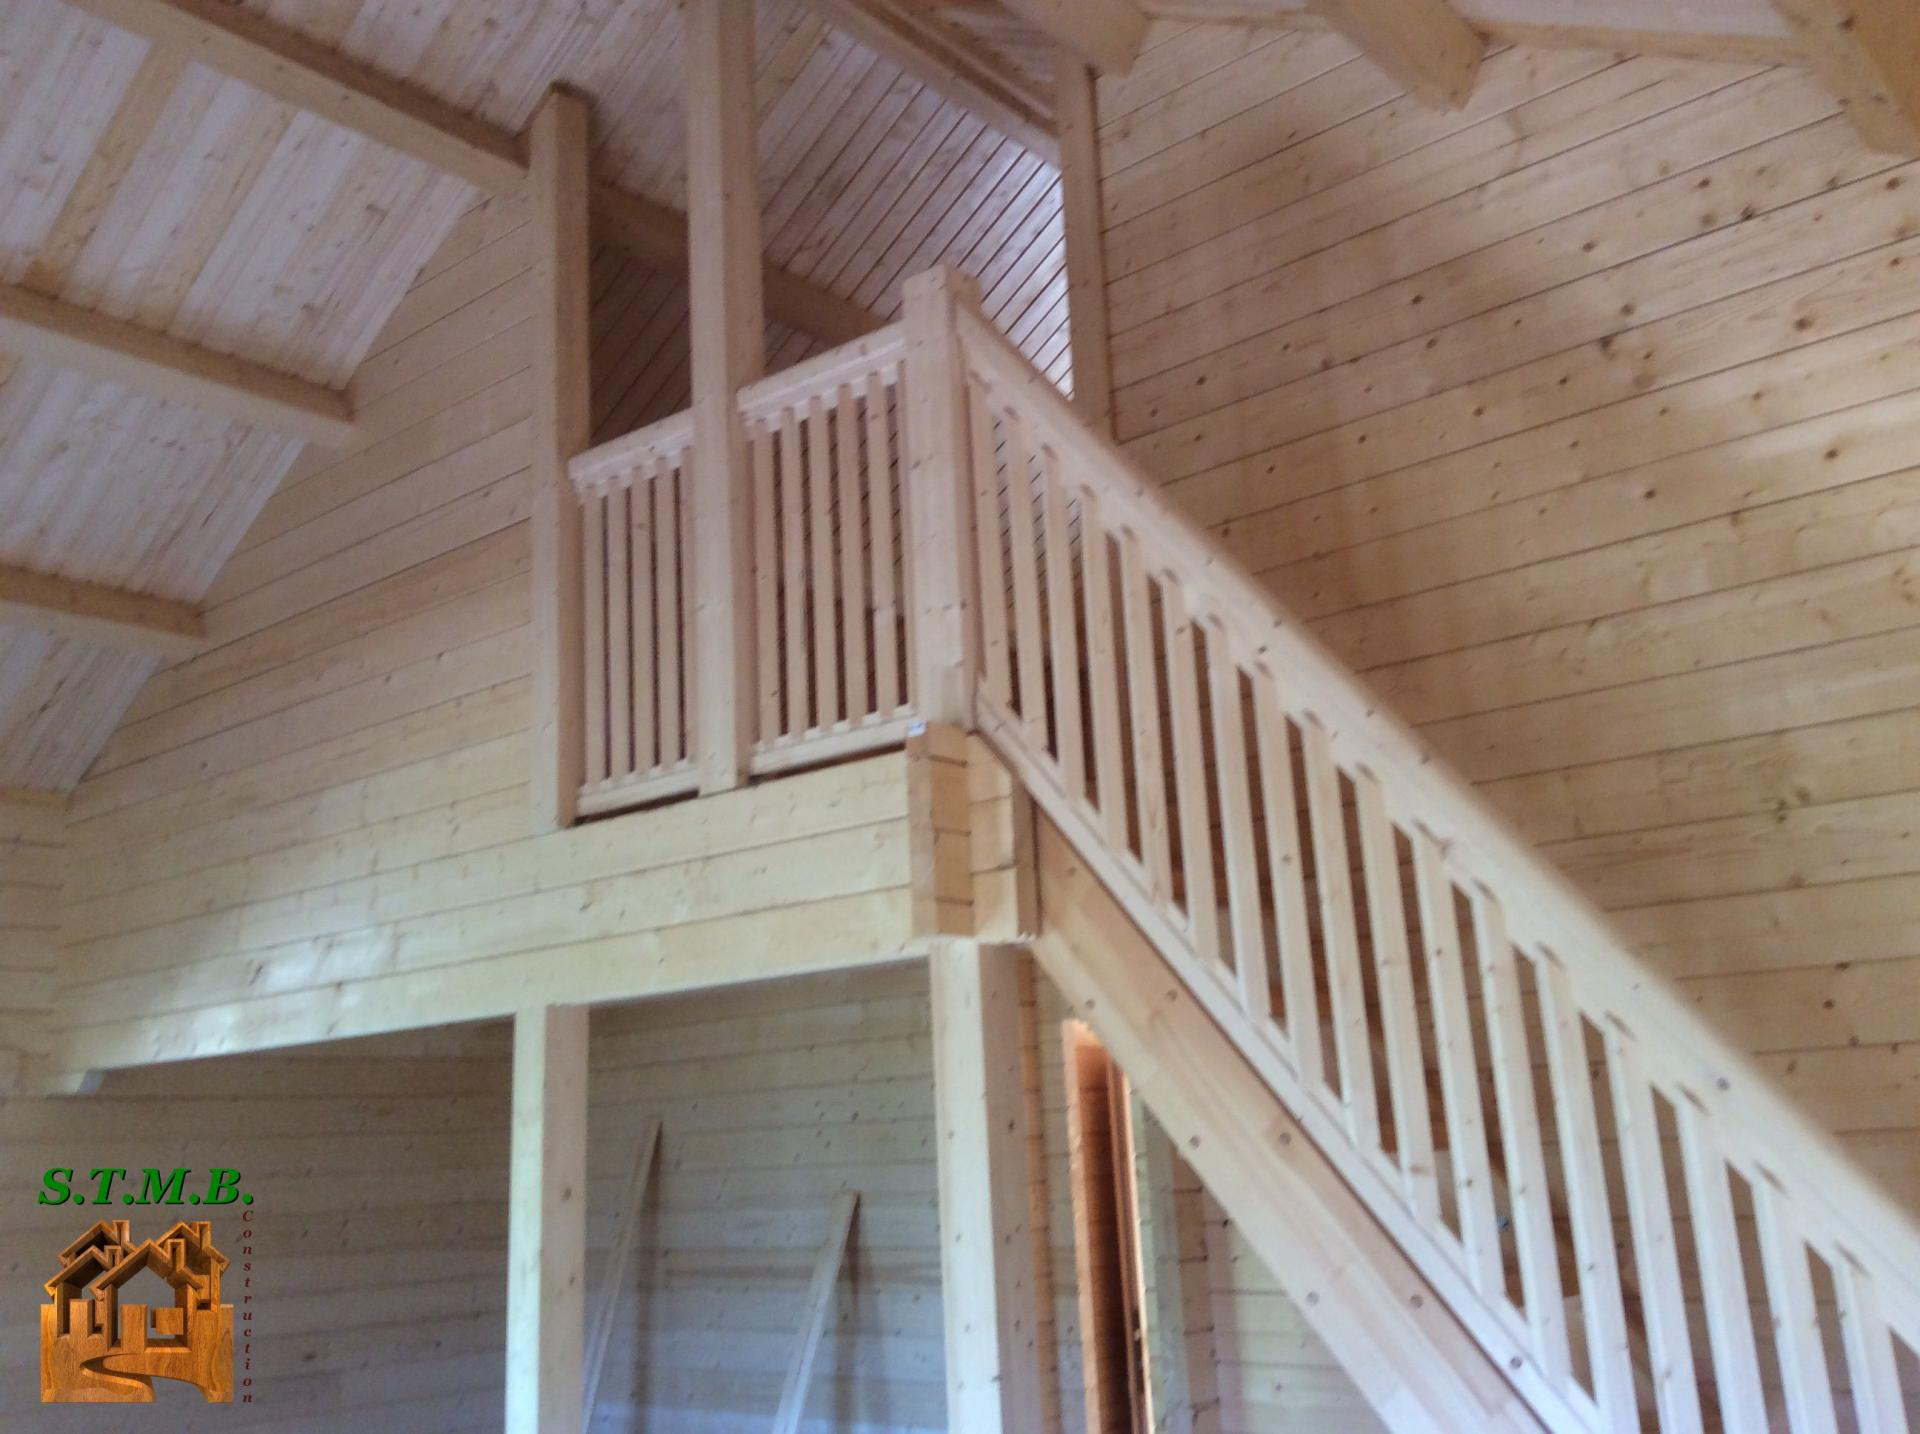 Photo 14 montage chalet en bois habitable versaille mezzanine stmb construction